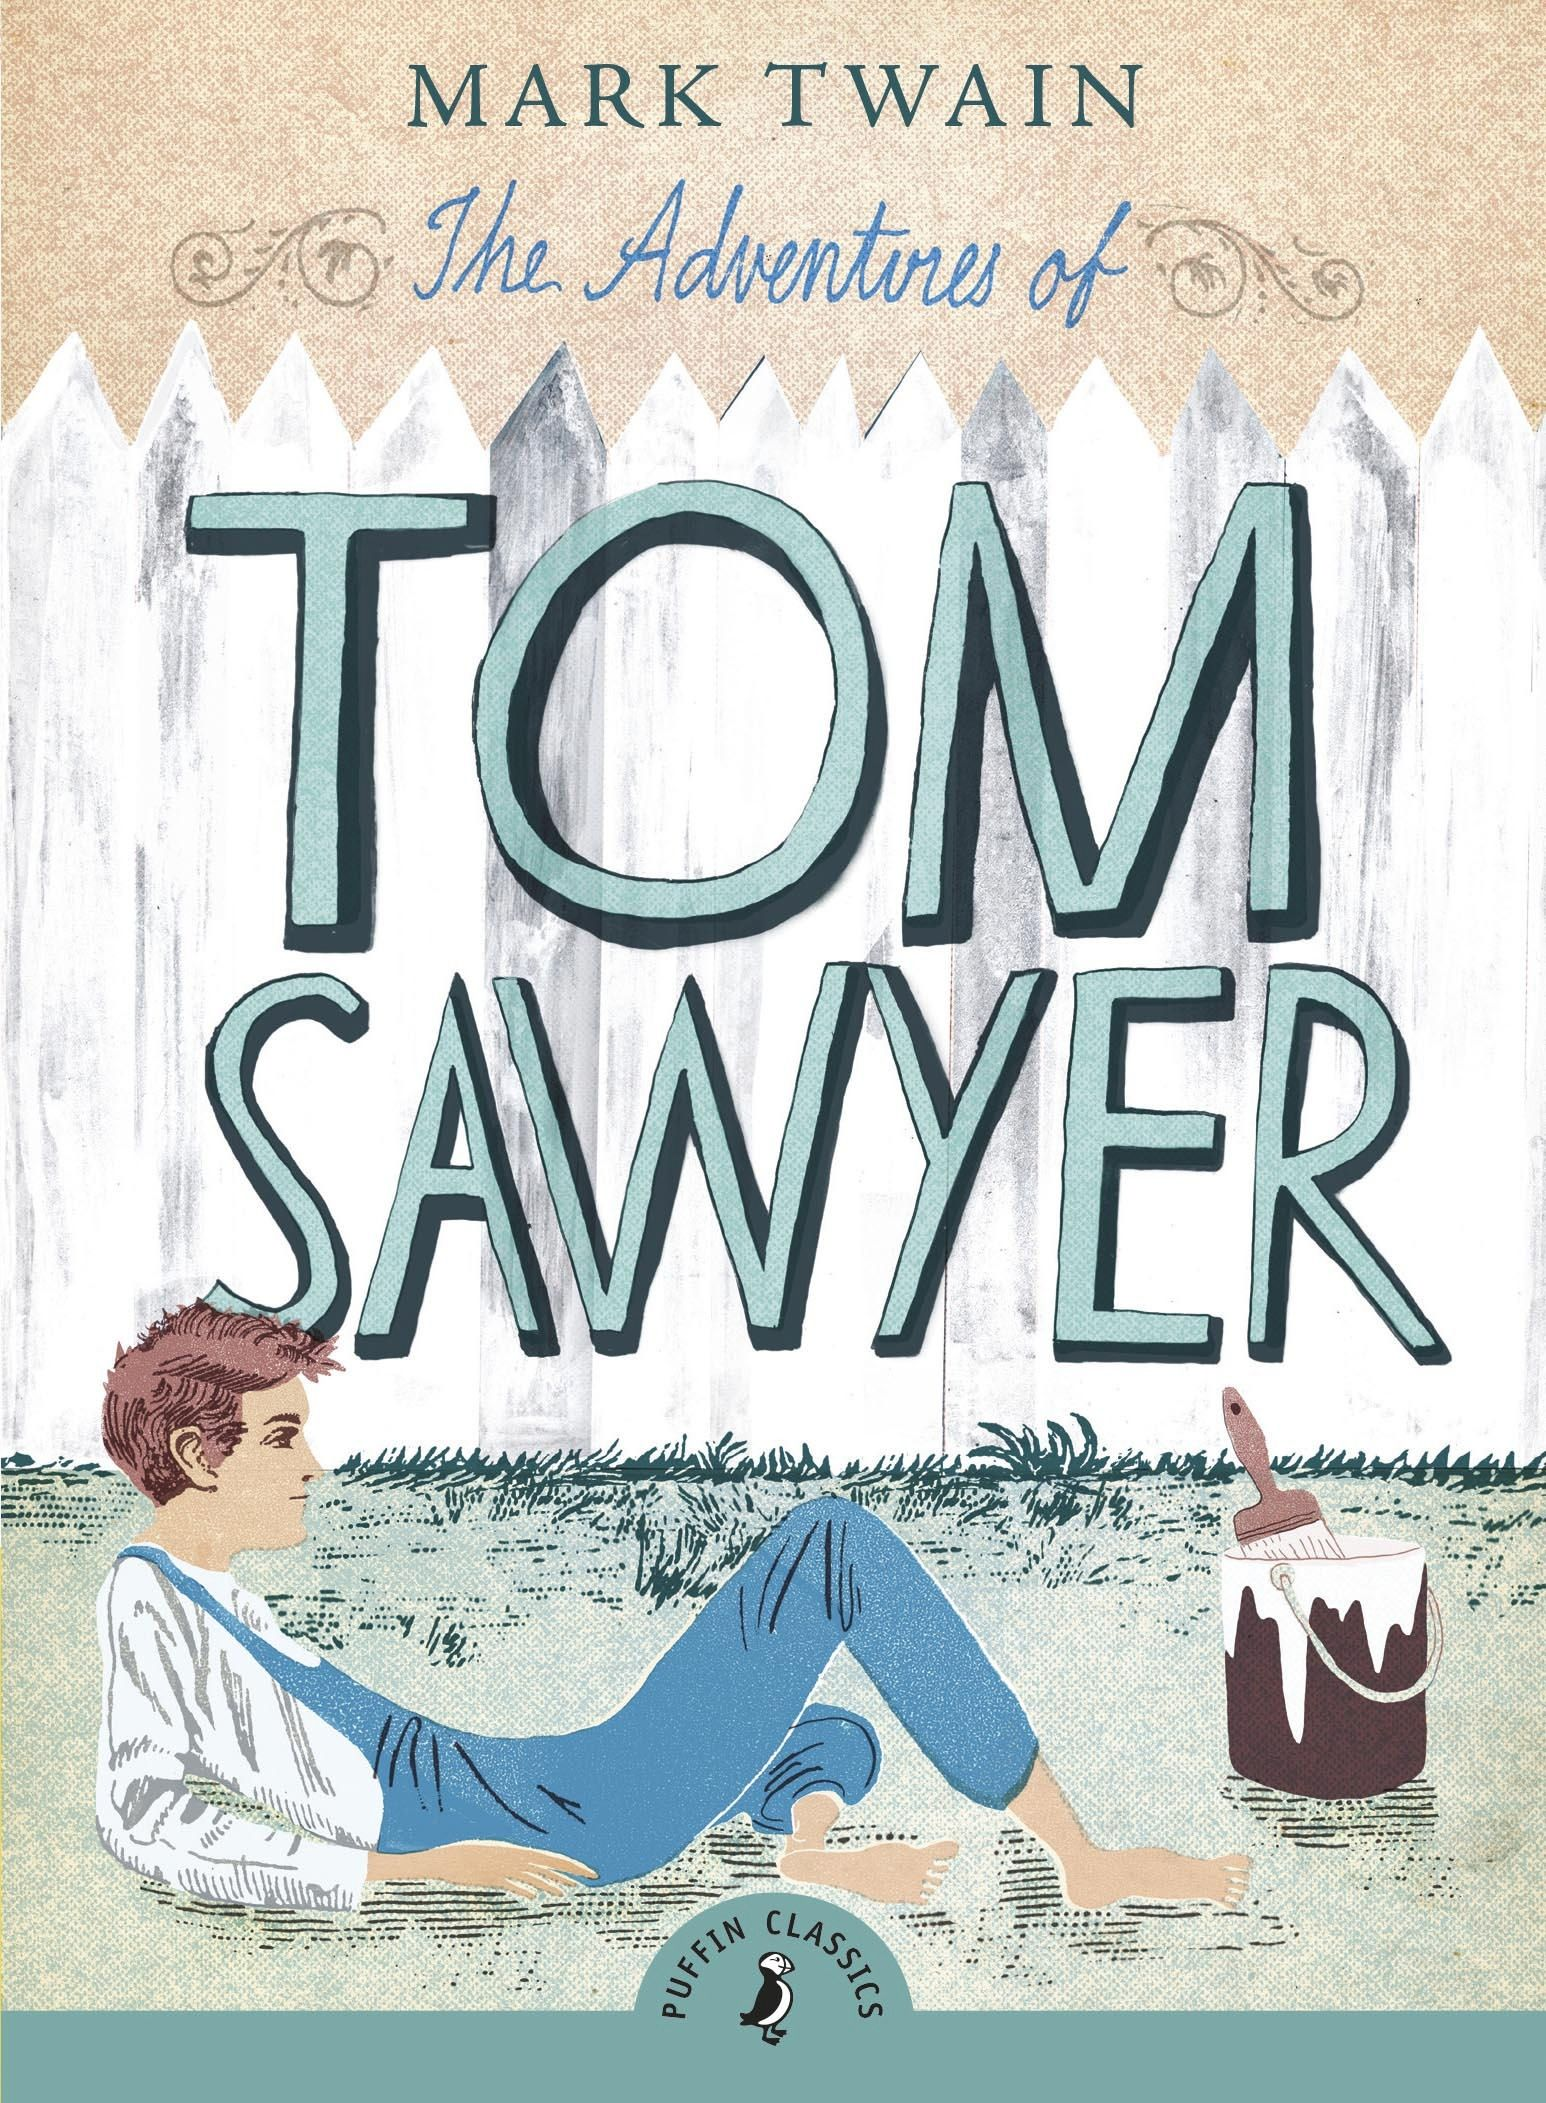 tom sawyer book cover google search madmen pop culture tom sawyer book cover google search